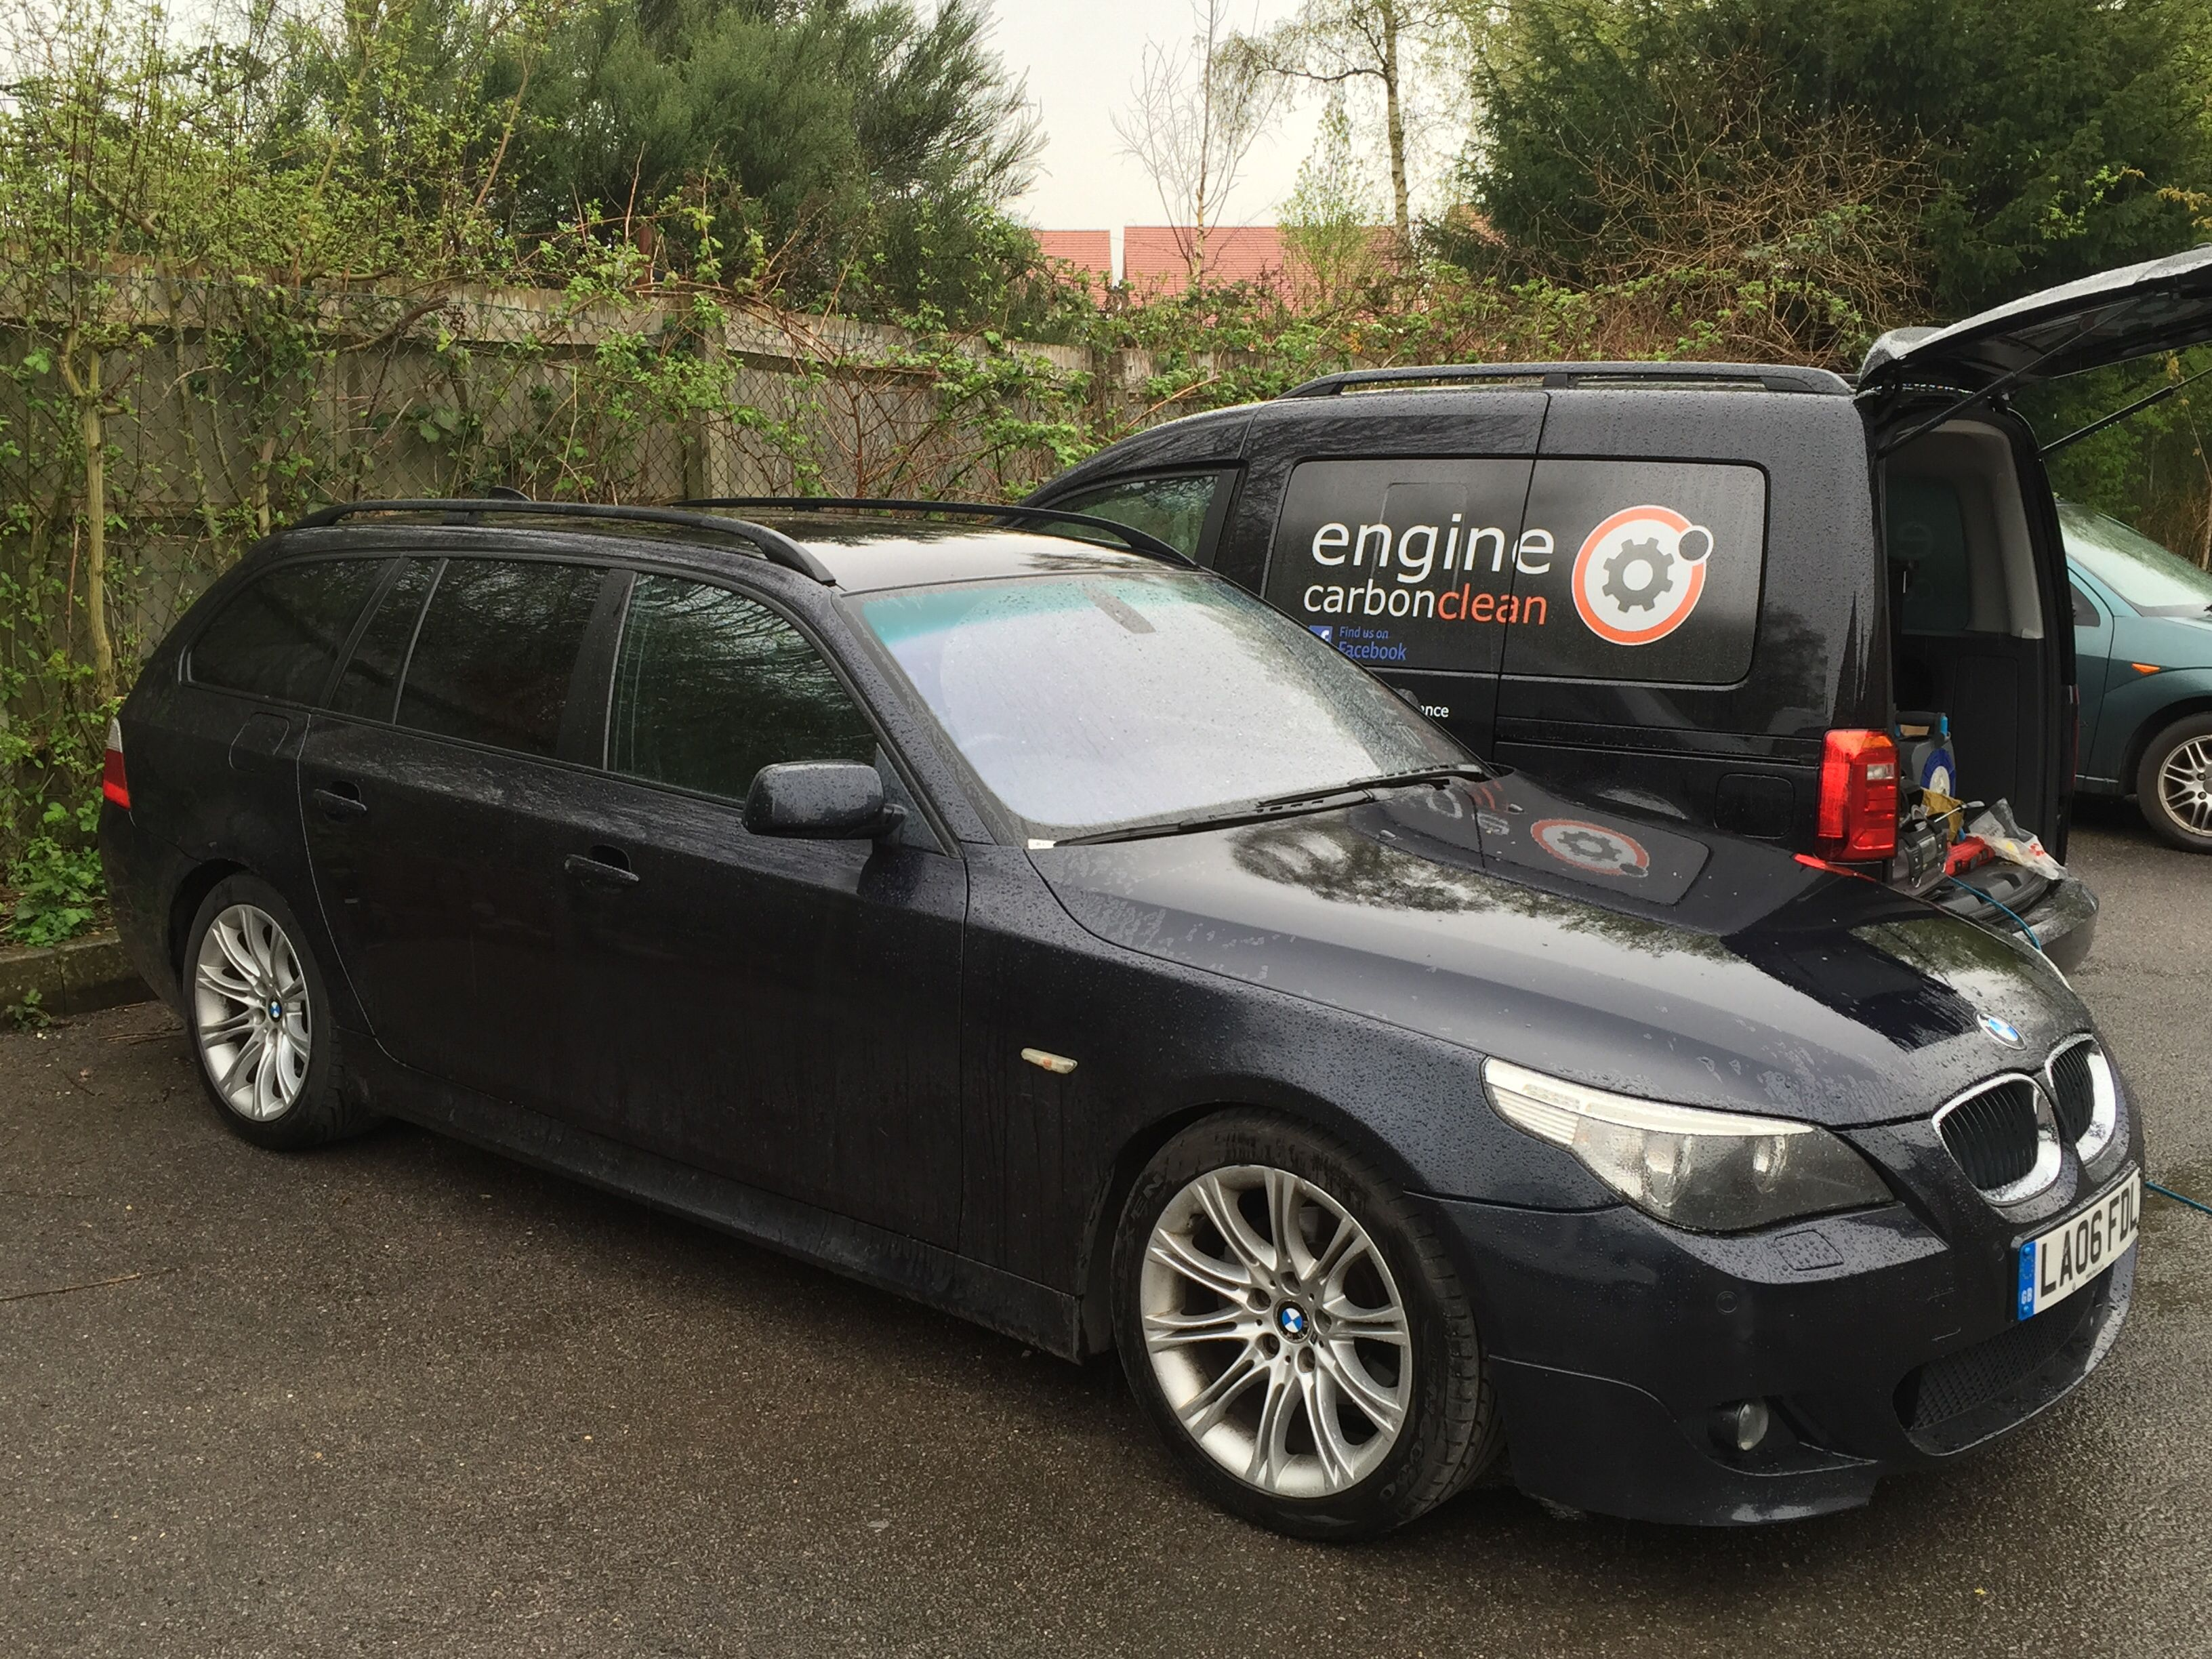 Bmw 520d Having An Engine Carbon Clean Economy Performance